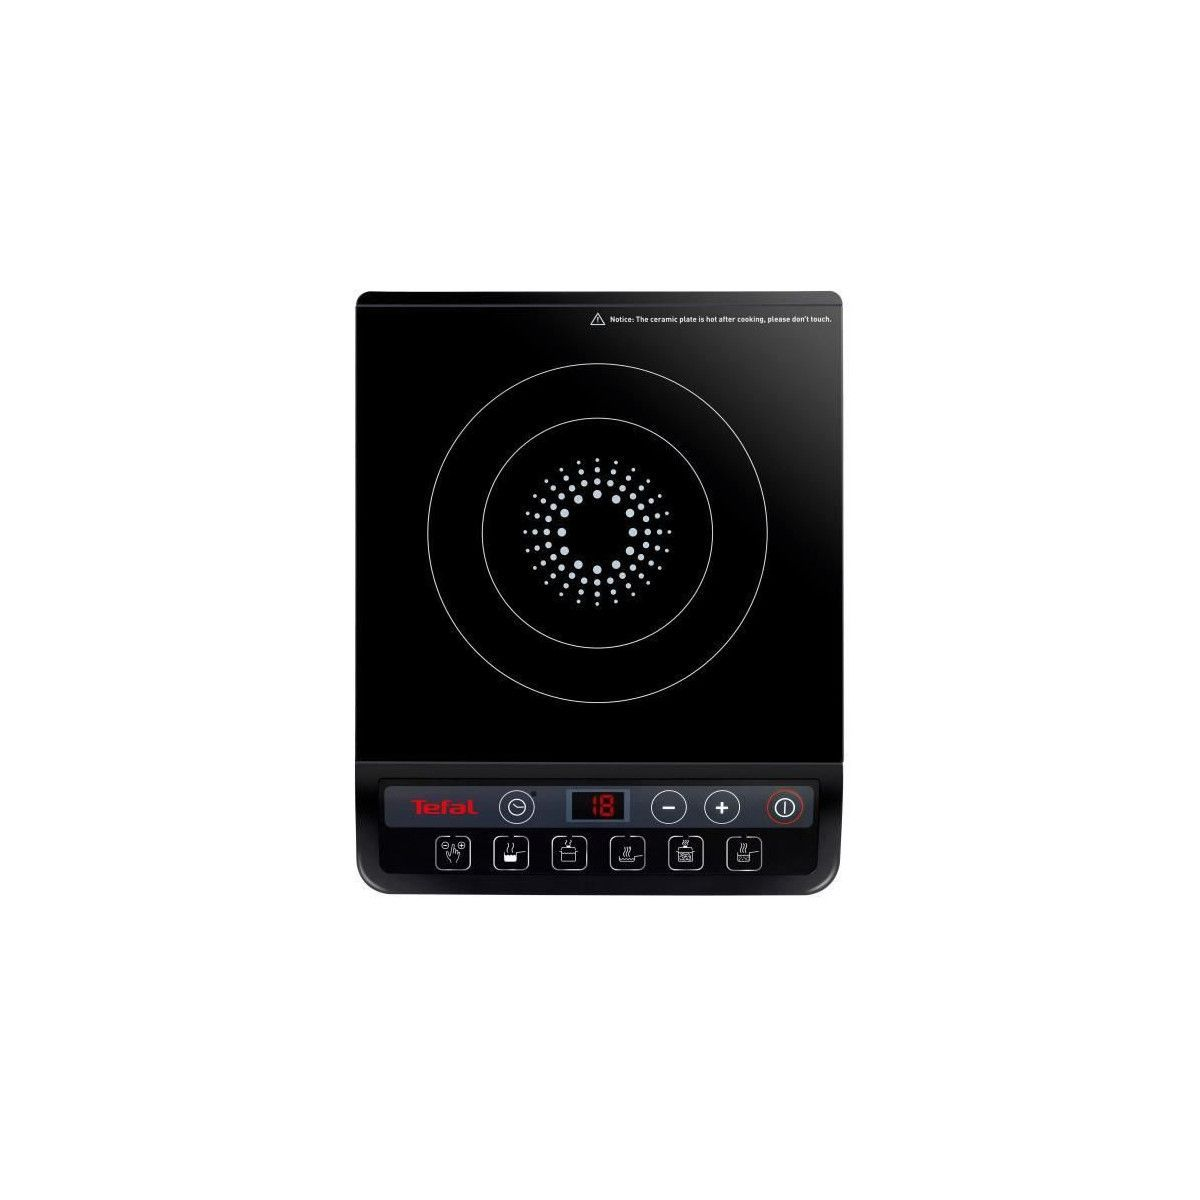 Plaque Chauffante Induction Tefal Ih201812 Plaque De Cuisson Posable A Induction Noir